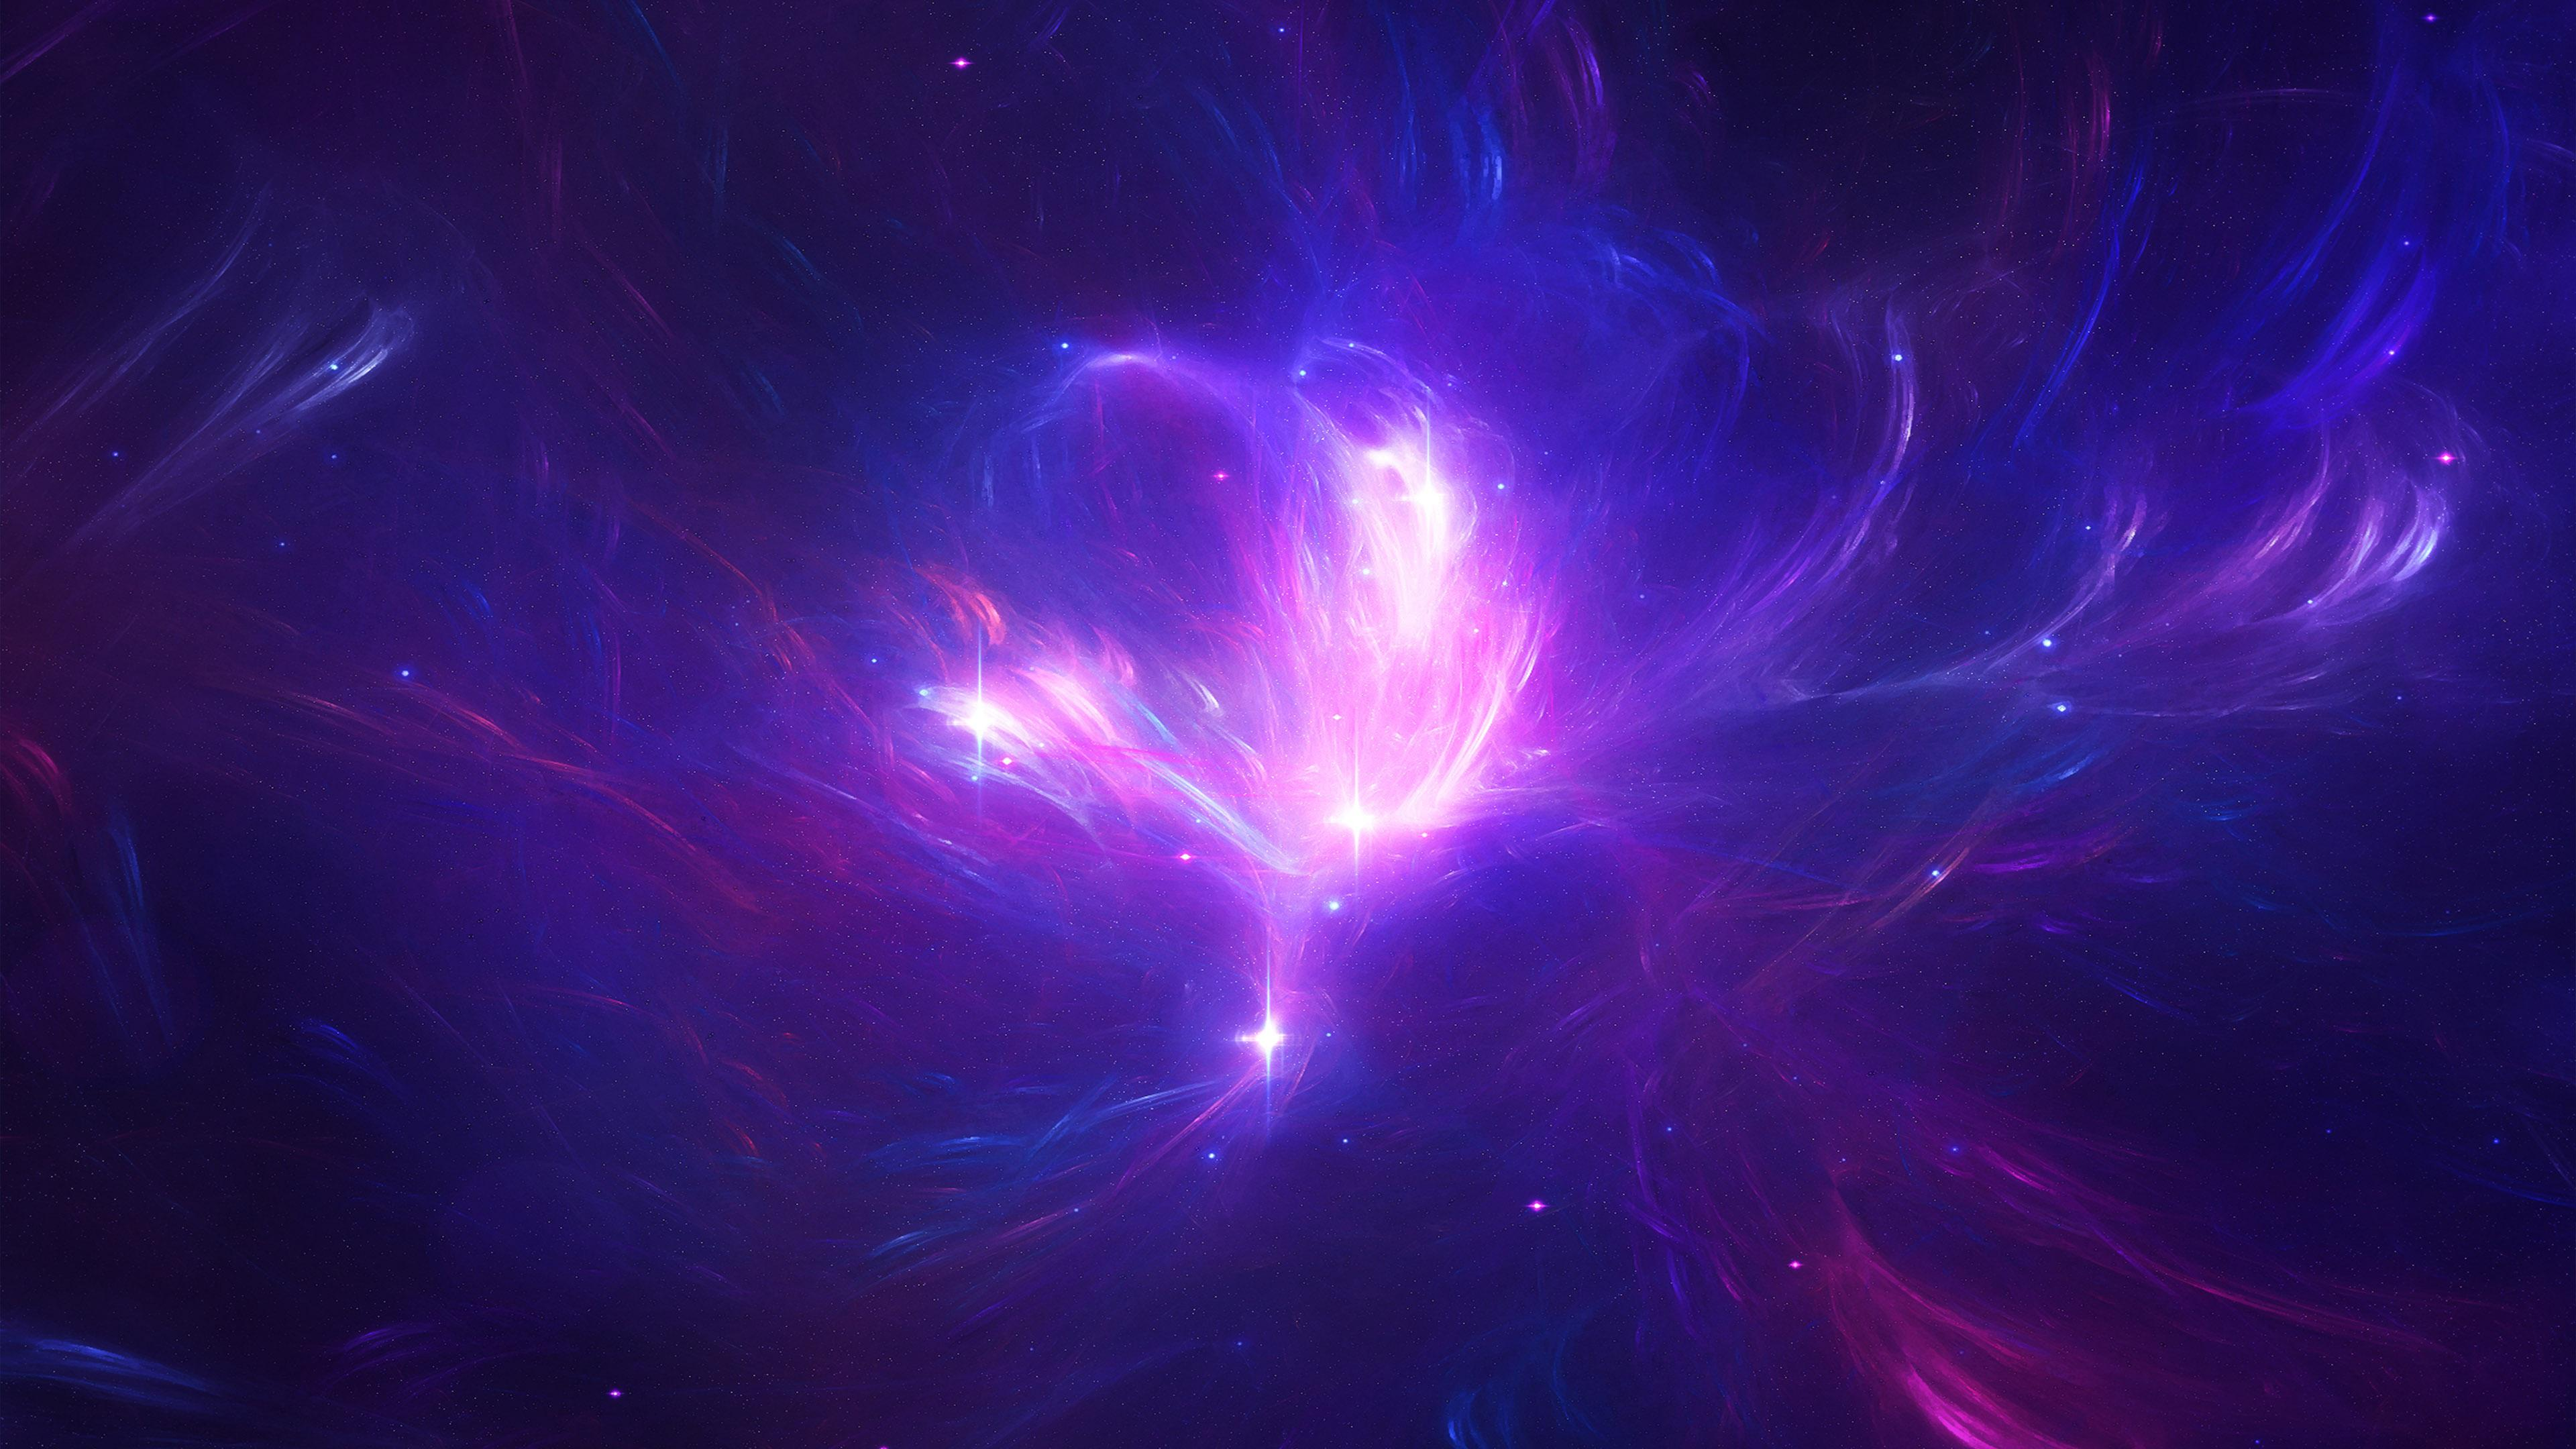 Nebula 4K wallpapers for your desktop or mobile screen ...